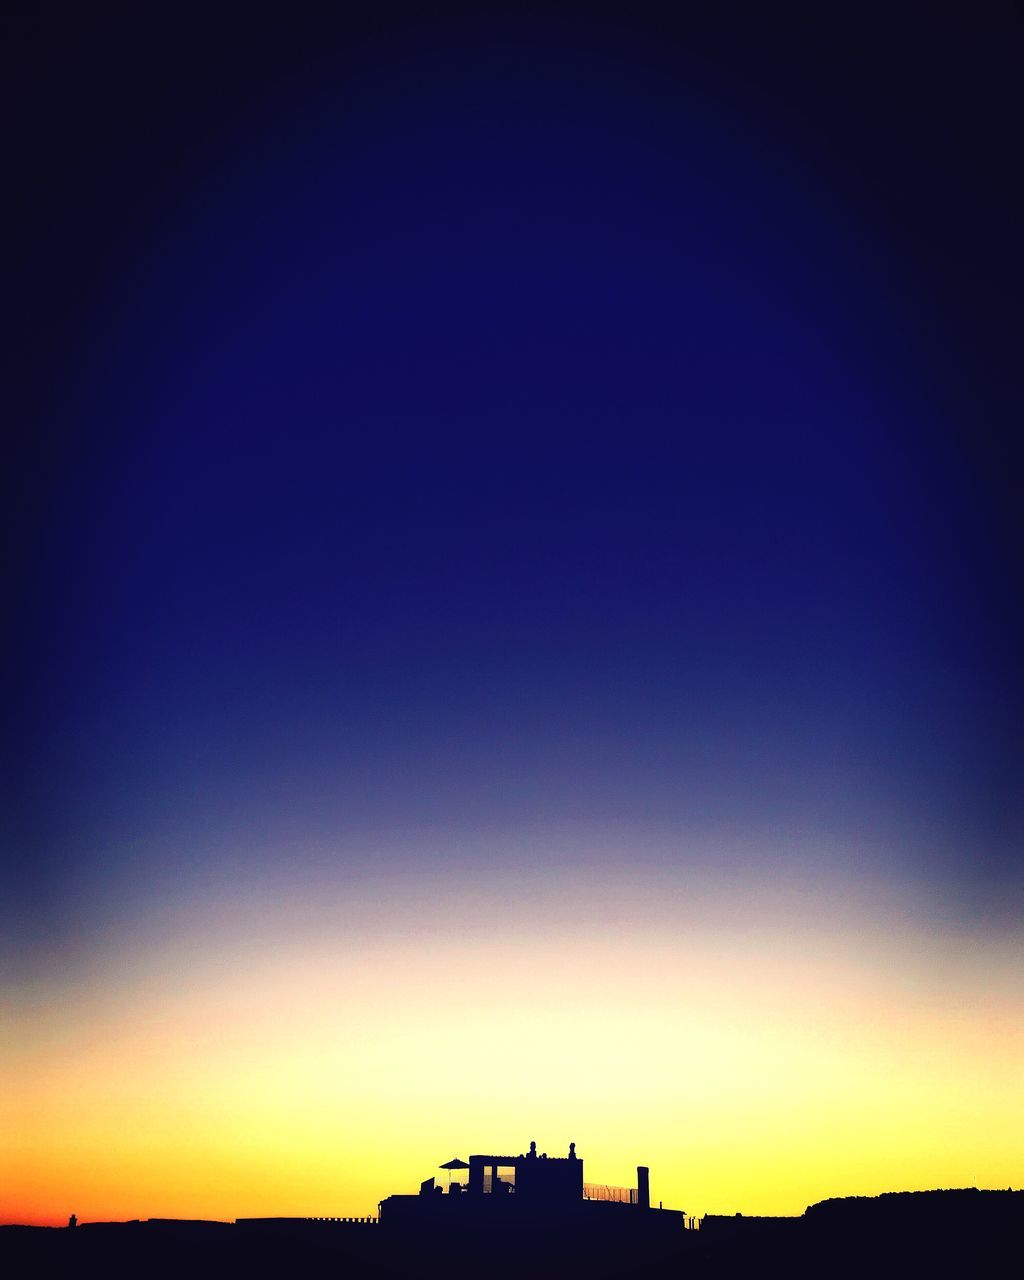 silhouette, blue, built structure, copy space, architecture, sunset, building exterior, nature, beauty in nature, outdoors, no people, sky, scenics, clear sky, day, vapor trail